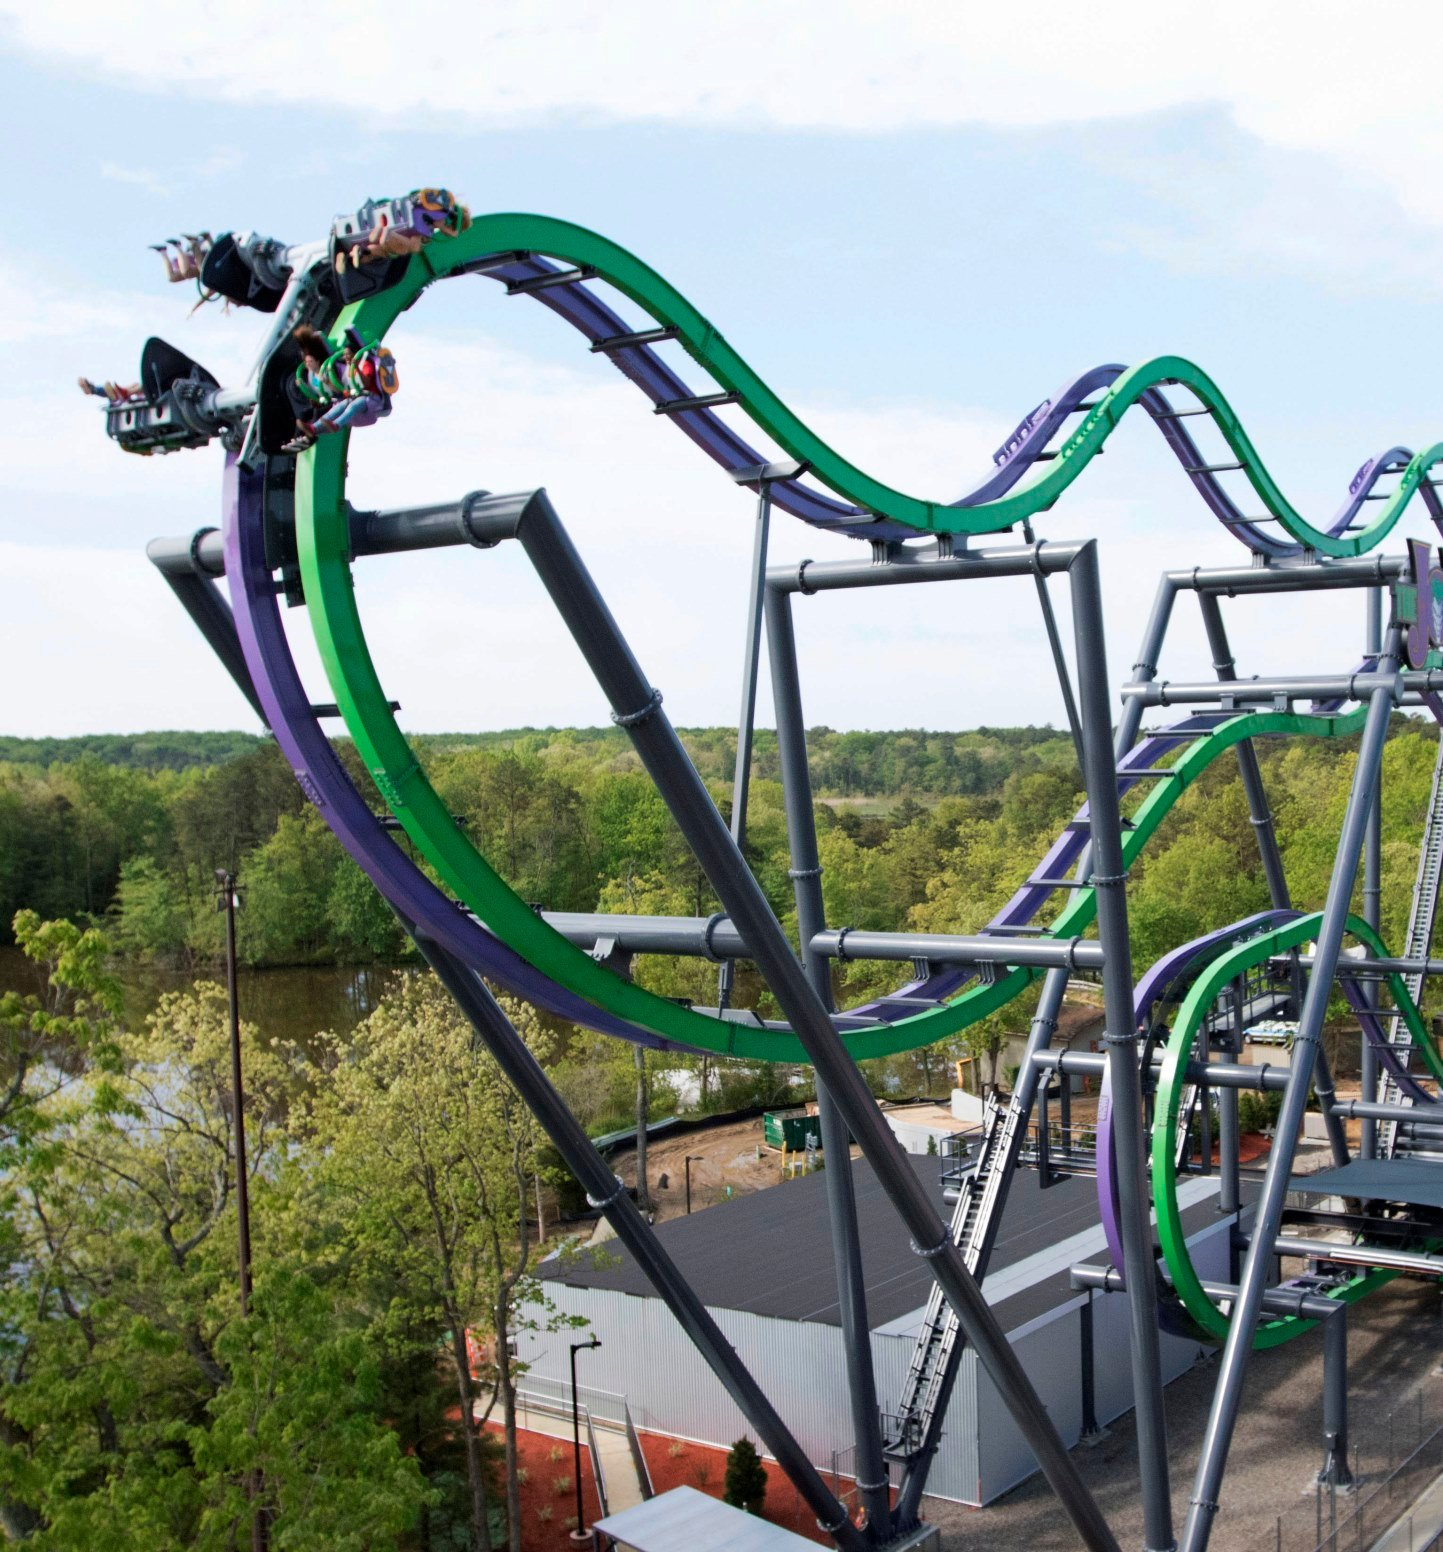 Coaster Power Hours Six Flags Great Adventure